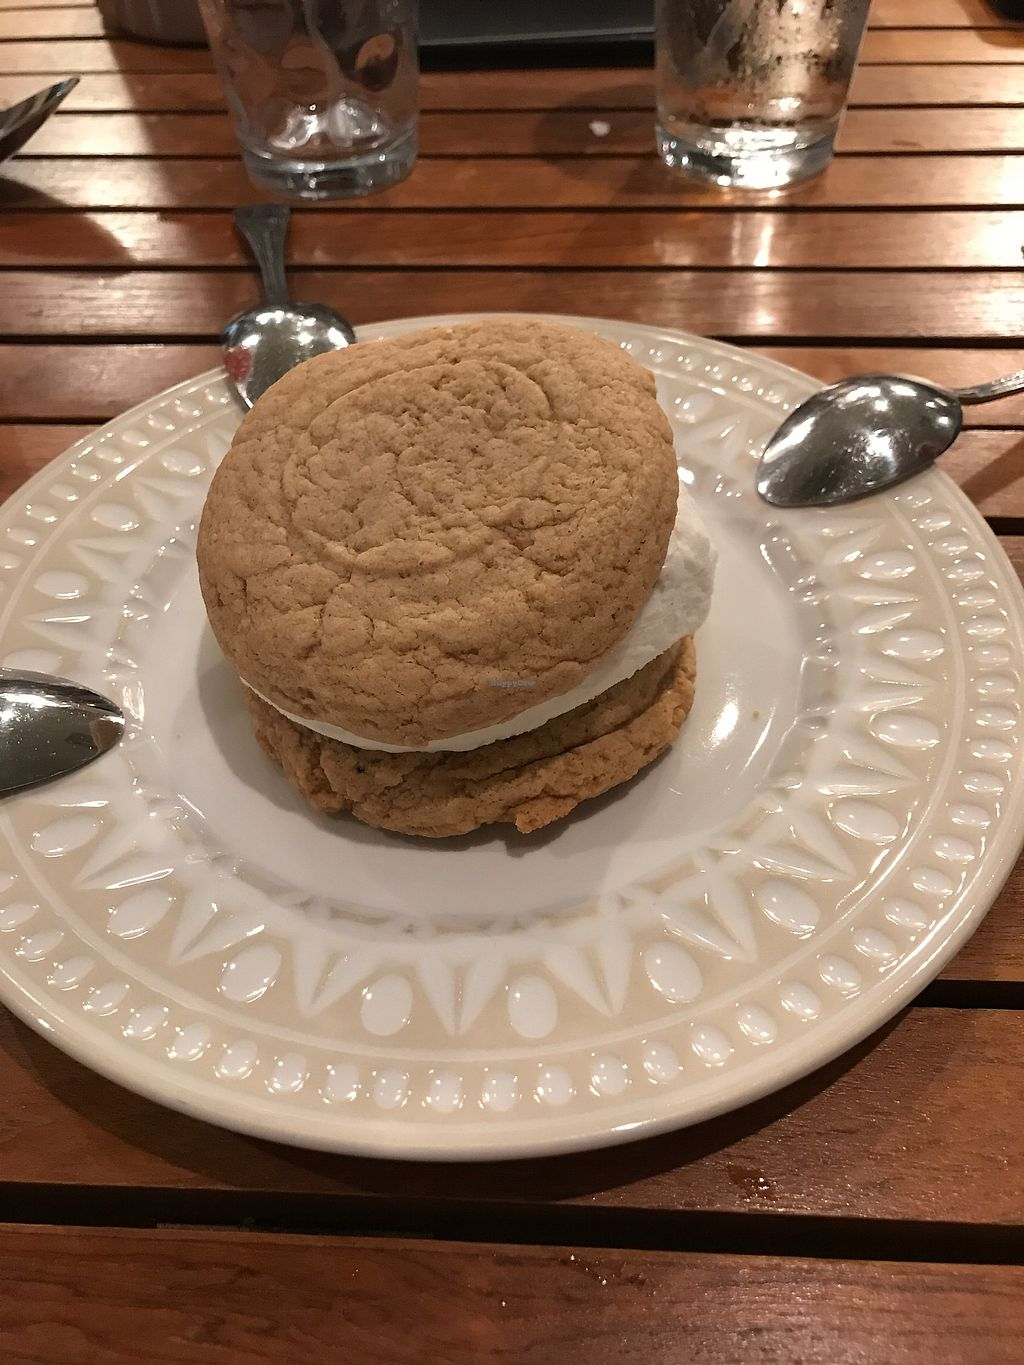 "Photo of Holi Vegan Kitchen & Bar  by <a href=""/members/profile/zoealexiswong"">zoealexiswong</a> <br/>vanilla ice cream sandwich on a peanut butter cookie  <br/> August 4, 2017  - <a href='/contact/abuse/image/76286/288440'>Report</a>"